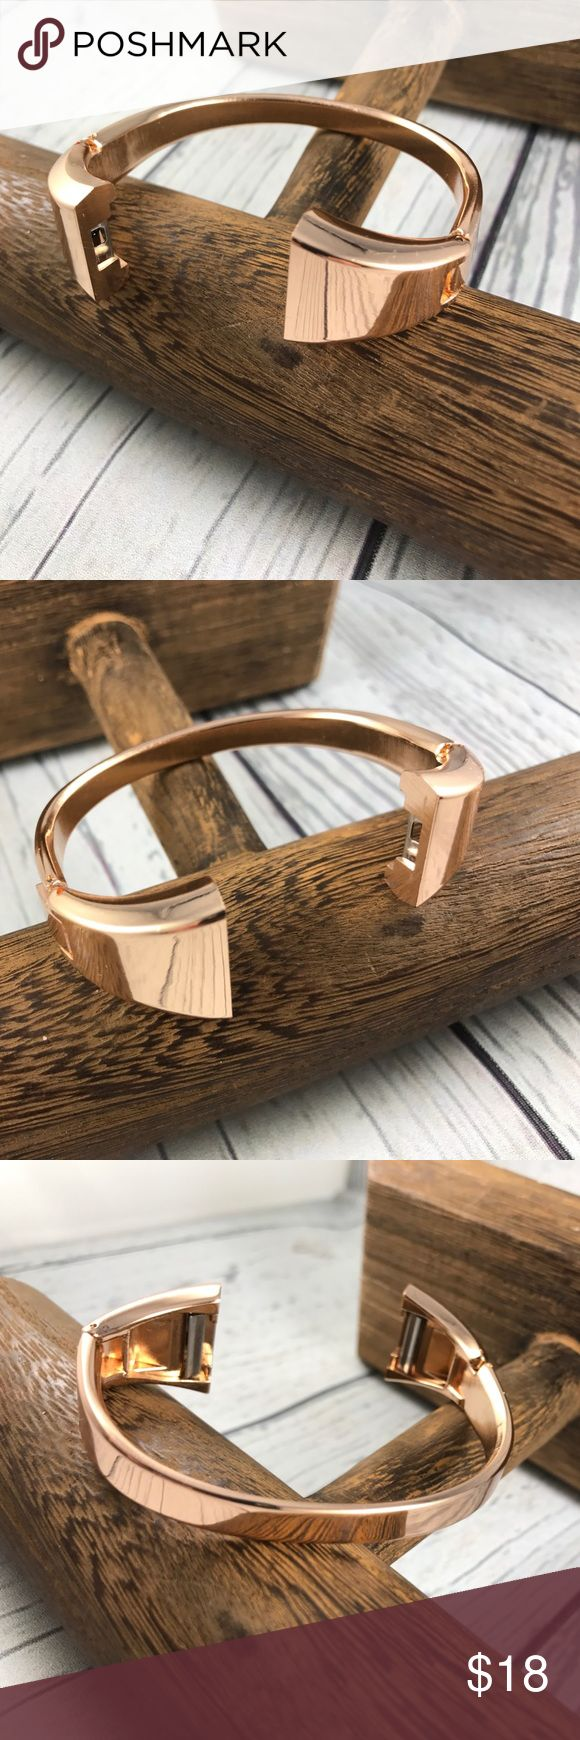 Rose Gold Fitbit Charge 2 Bangle Bracelet Band This is a replacement band. Not Fitbit Brand. Generic. Rose Gold Bracelet style. In very good condition with minor tiny scuffing.  Size small medium Generic Accessories Watches